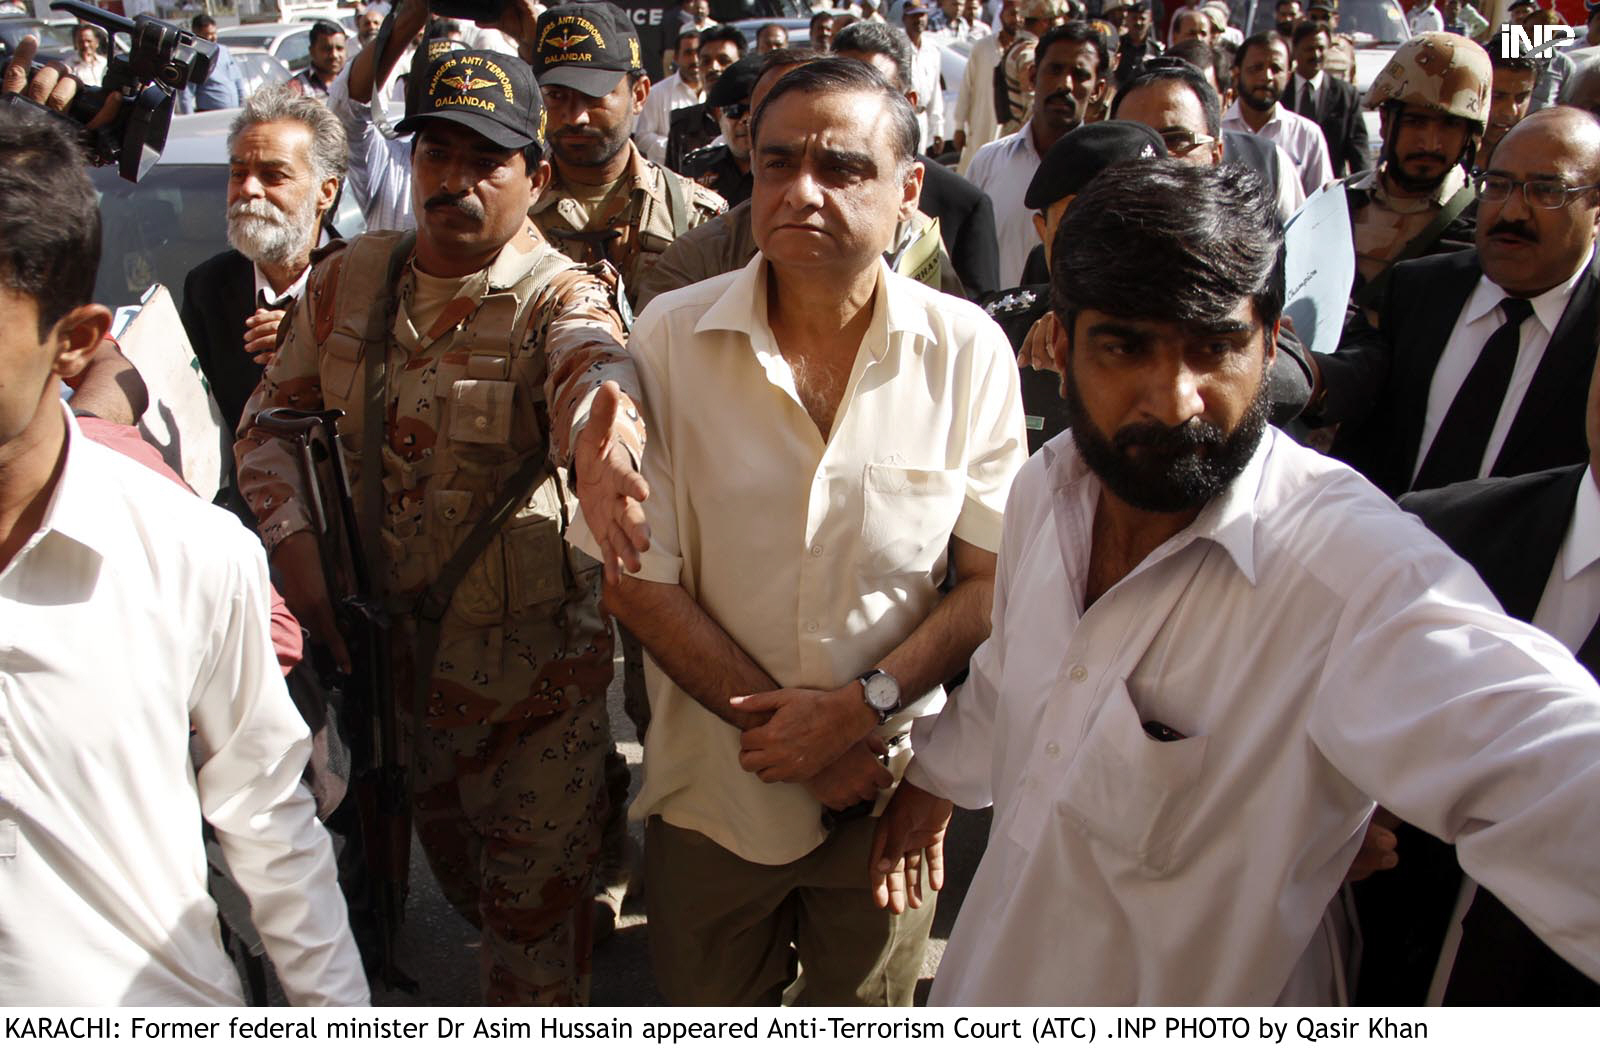 Former minister Dr Asim Hussain arrives to appear before an Anti Terrorism Court in Karachi on November 26, 2015. PHOTO: FILE